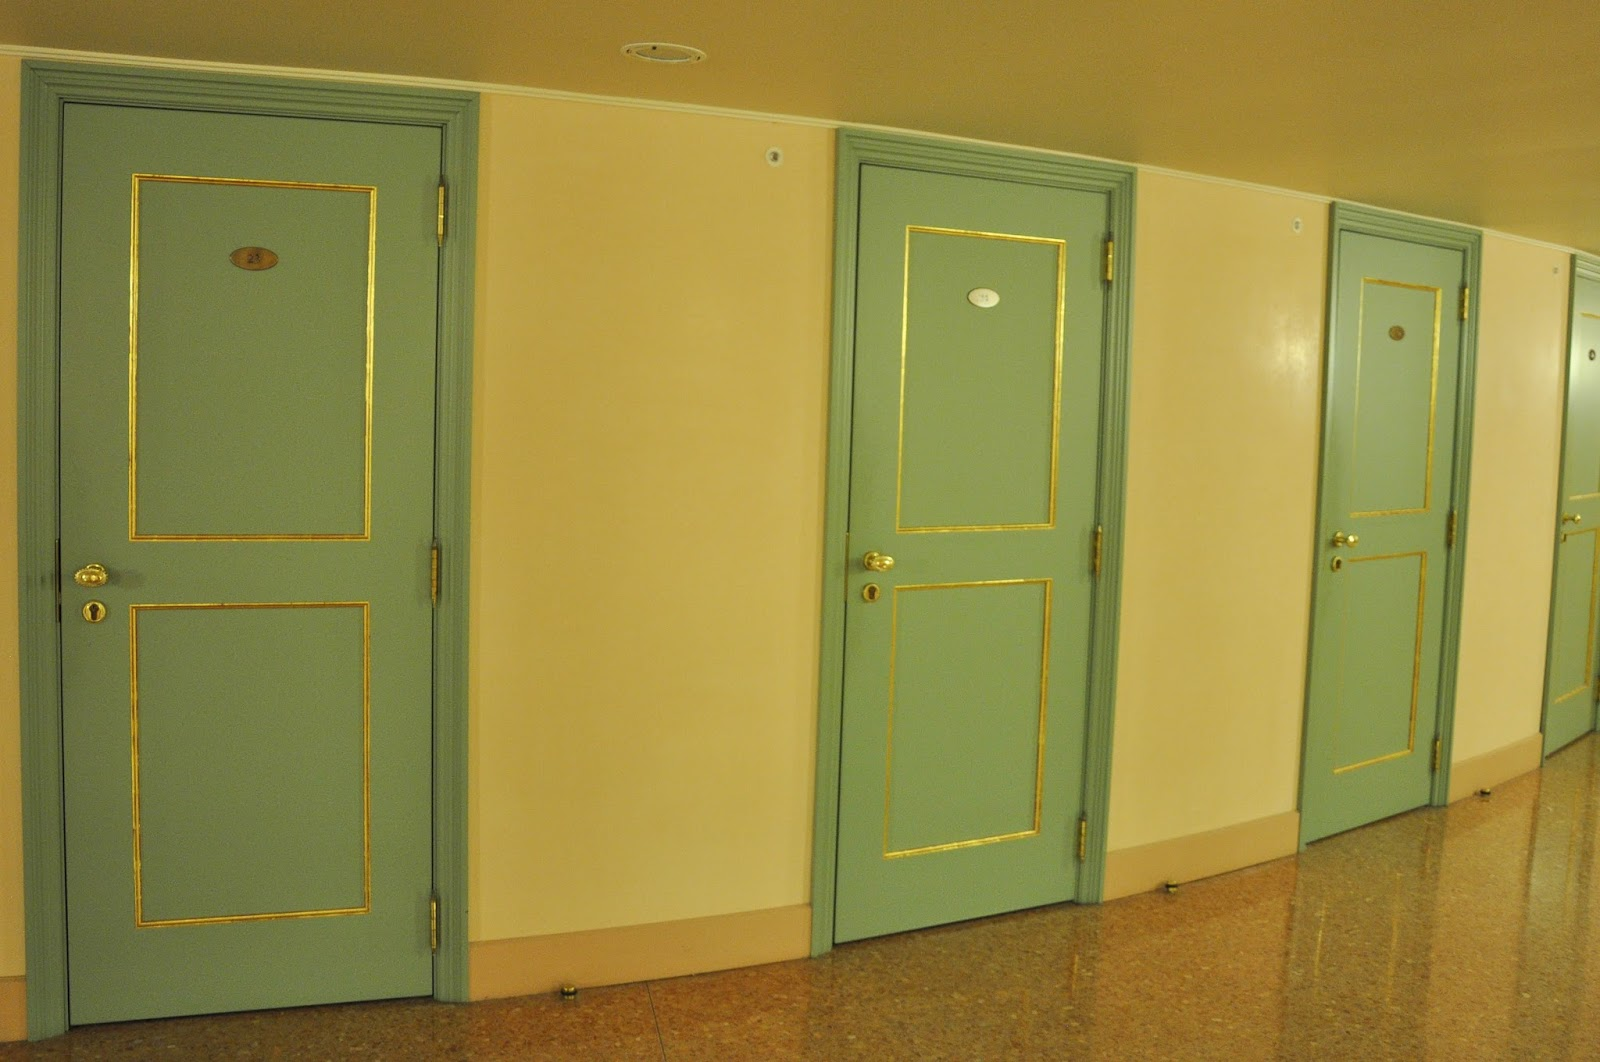 The doors leading to the boxes, La Fenice, Venice, Italy